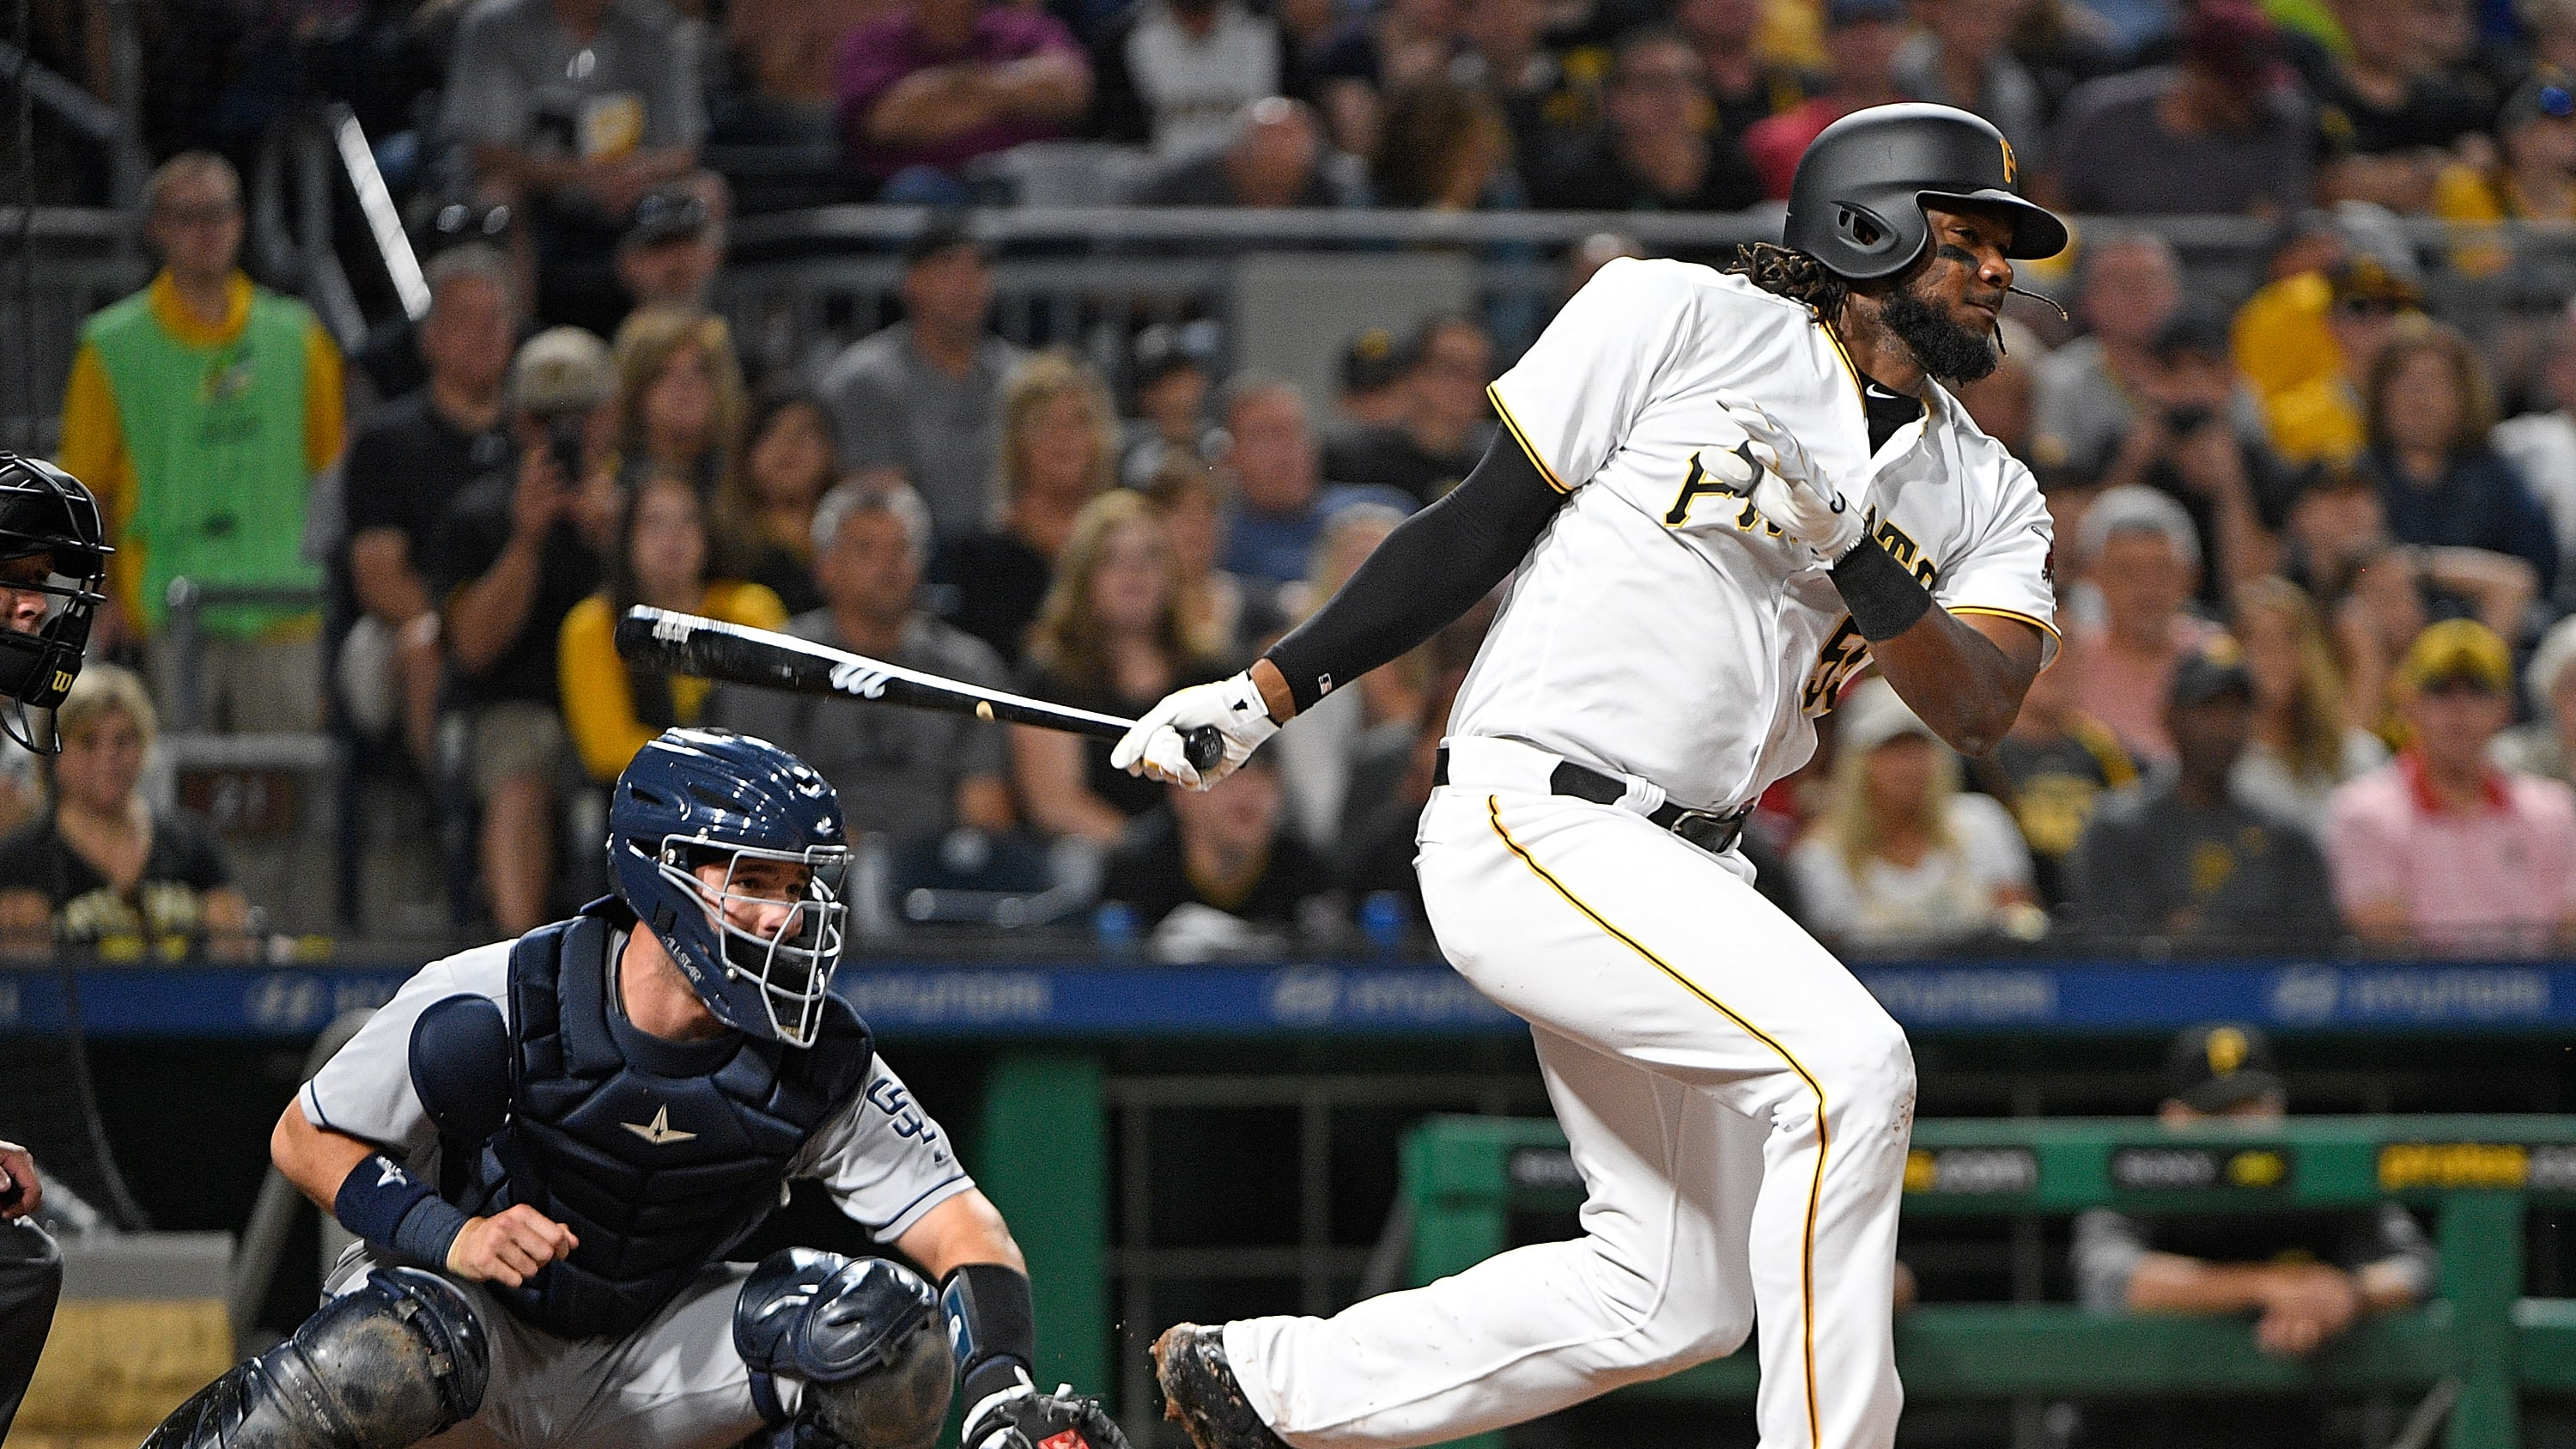 PITTSBURGH, PA - AUGUST 05:  Josh Bell #55 of the Pittsburgh Pirates singles to right field in the fourth inning during the game against the San Diego Padres at PNC Park on August 5, 2017 in Pittsburgh, Pennsylvania. (Photo by Justin Berl/Getty Images)